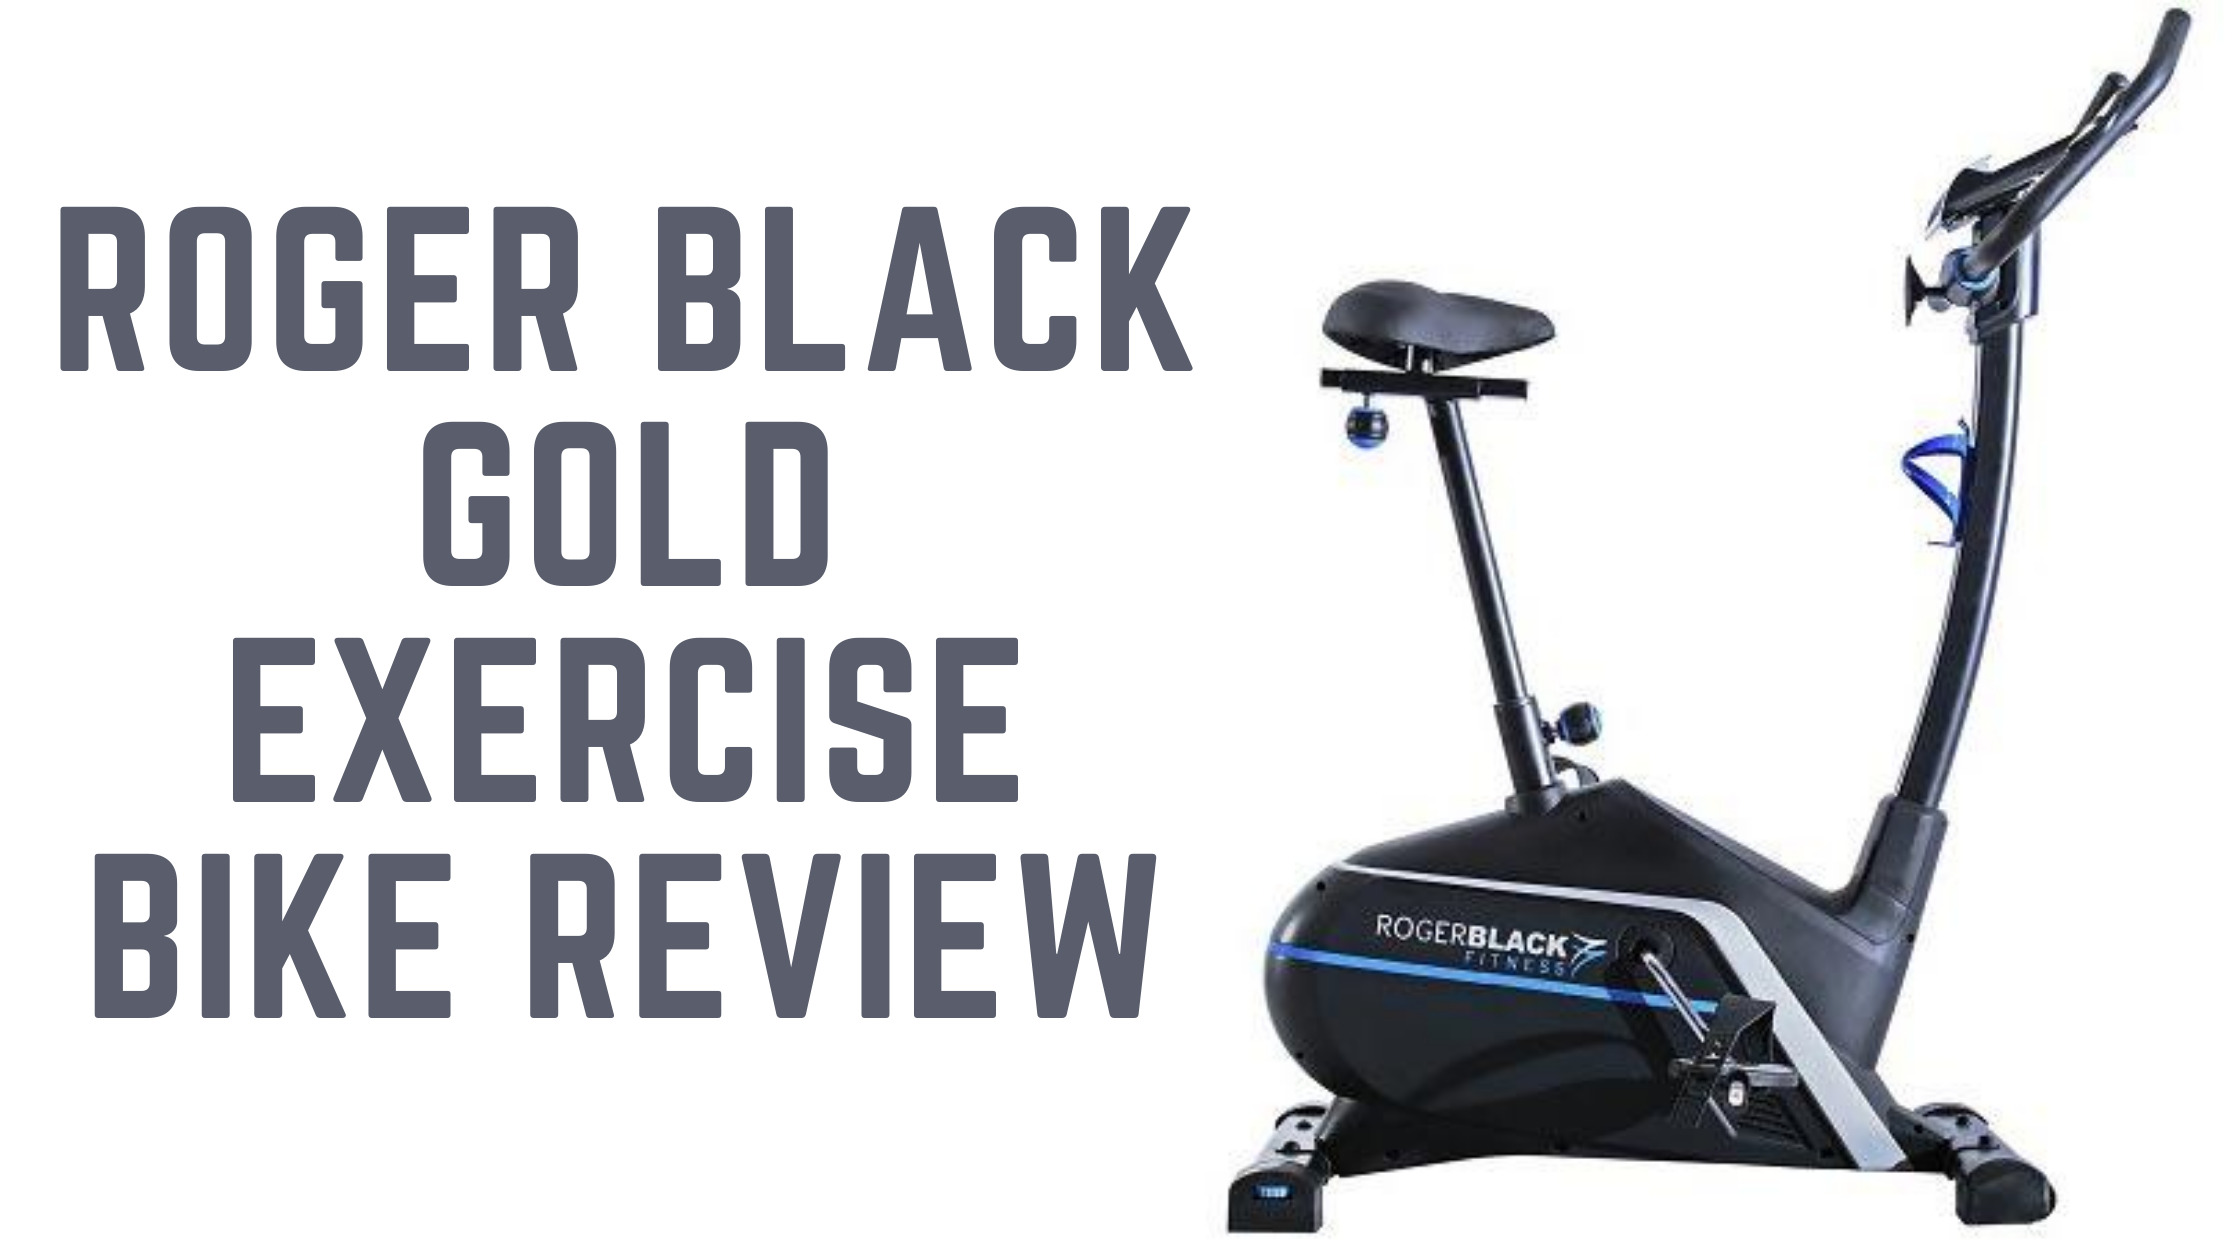 Roger black gold exercise bike reviews